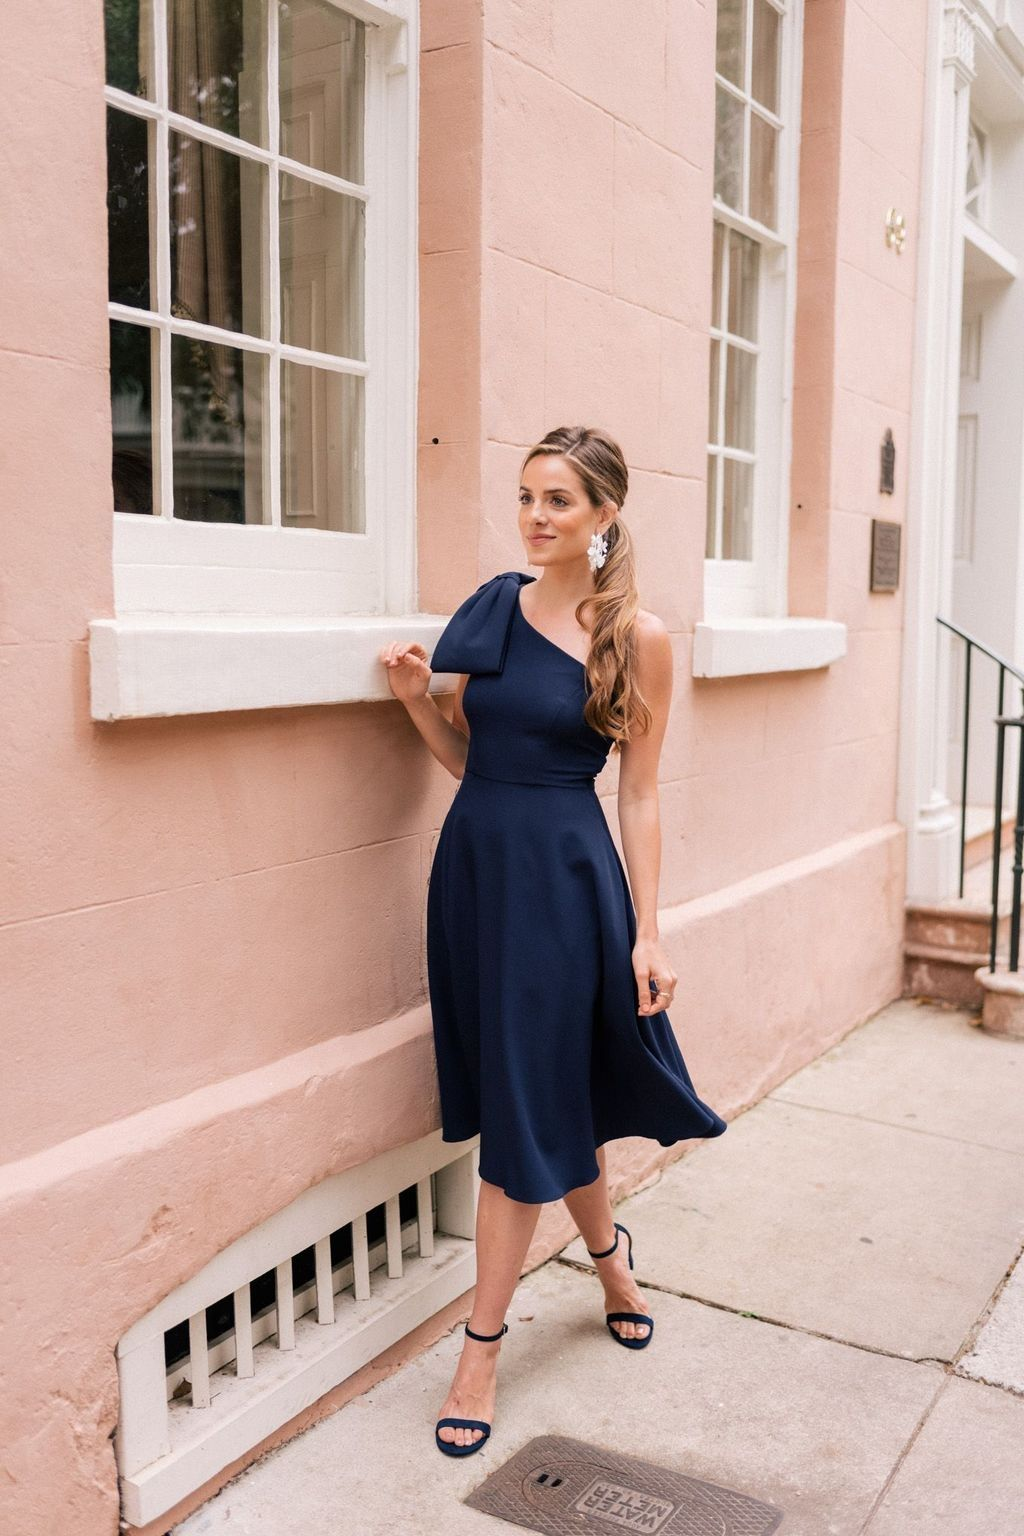 Wedding day guest dresses  Awesome  Inspiring Casual Summer Wedding Guest Dresses More at